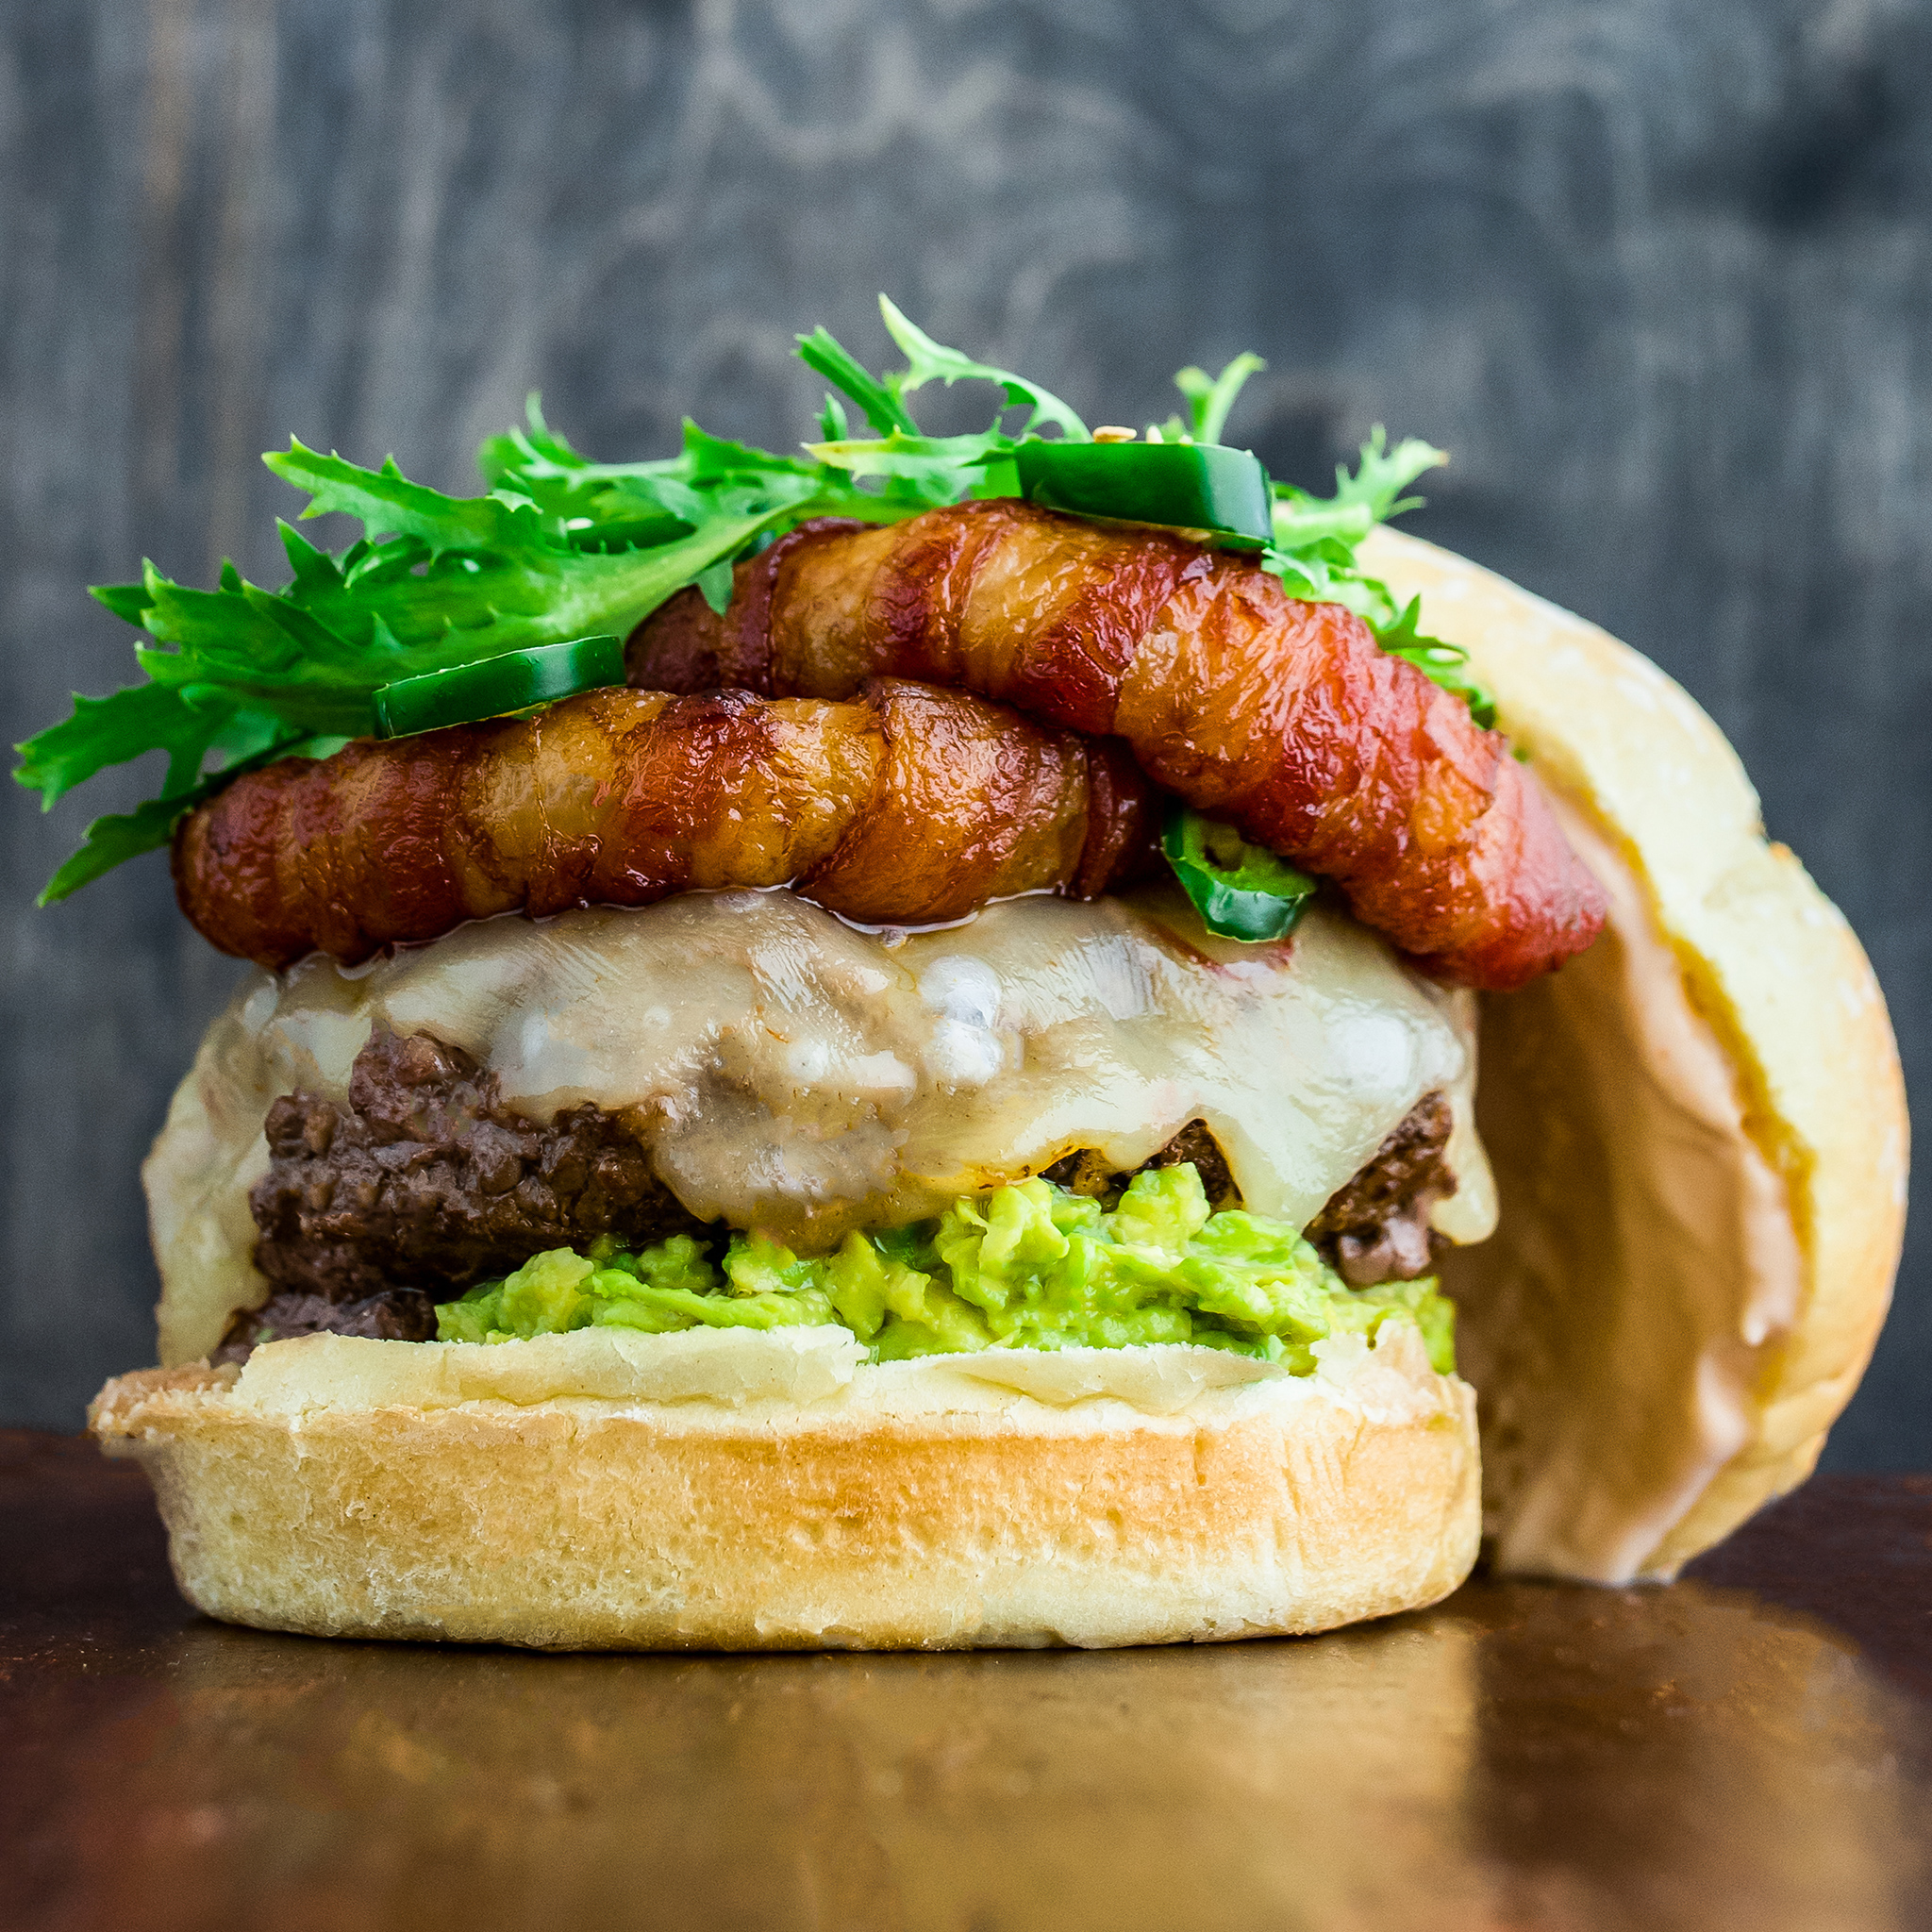 Why Aren't We All Putting Bacon-Wrapped Onion Rings on Our Burgers?